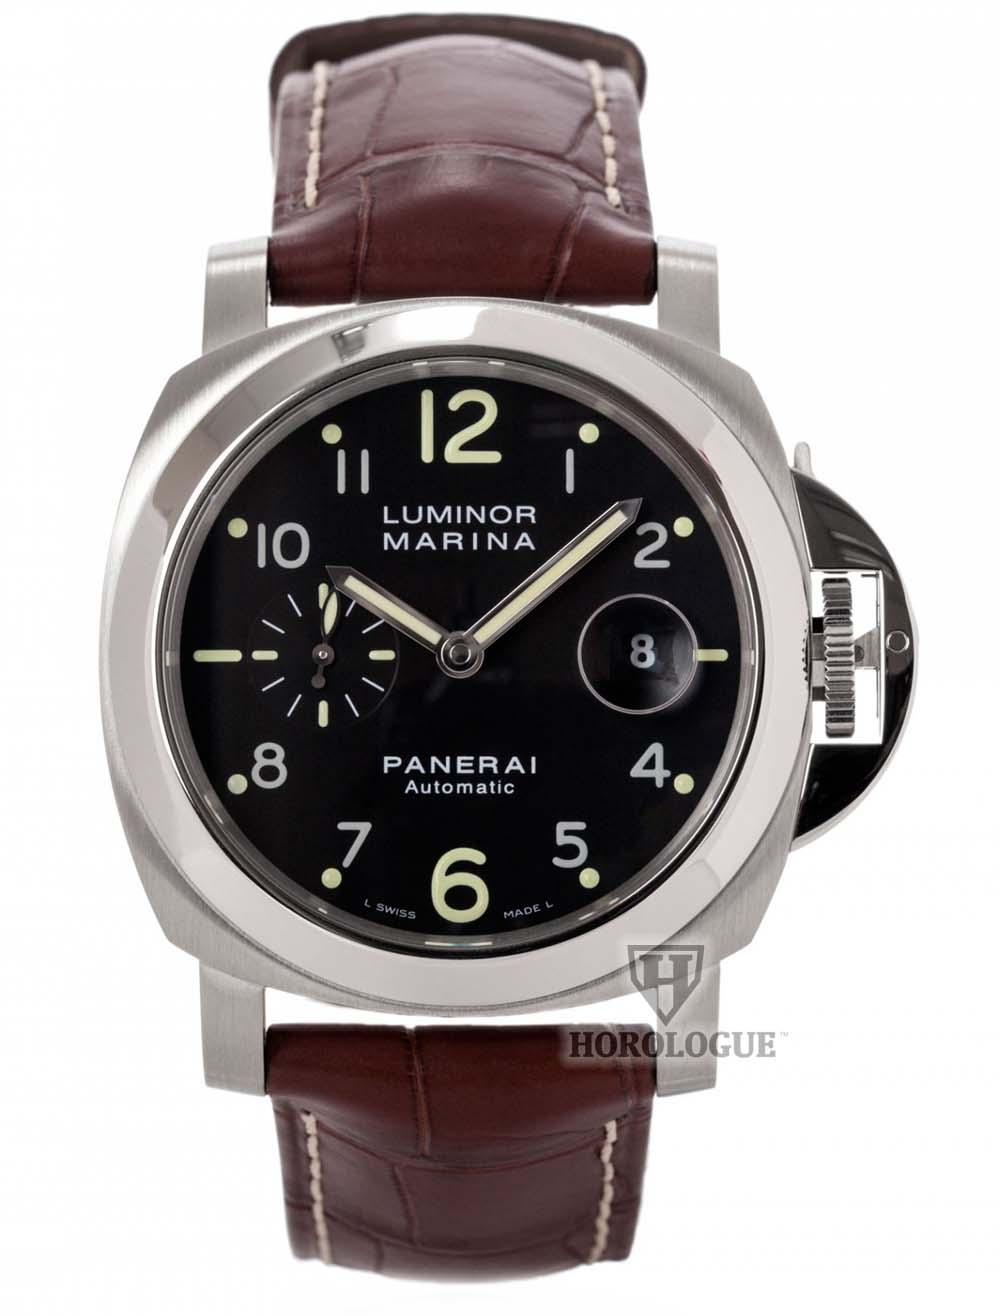 panerai luminor marina pam00164 price. Black Bedroom Furniture Sets. Home Design Ideas